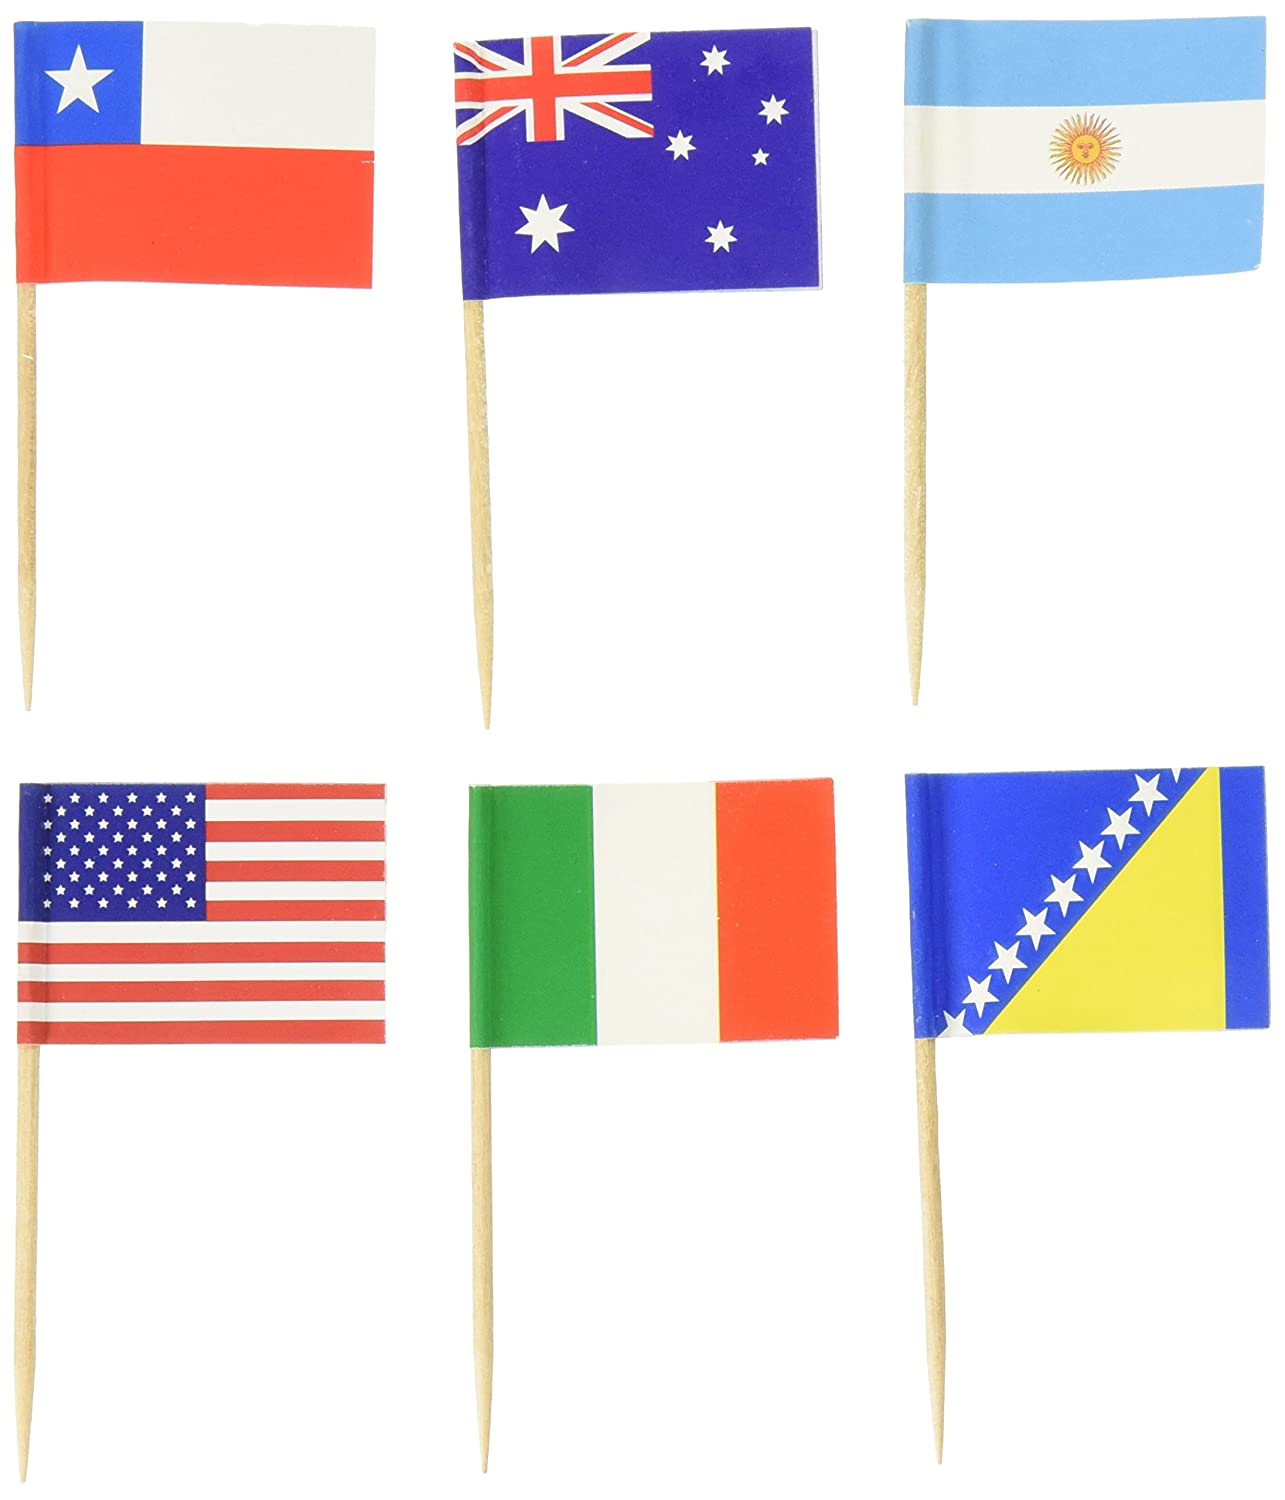 World Flag Toothpick (Box of 100 Toothpicks) Country Flags - International and Ethnic Events - Food Picks for Parties, Cocktails - Wood Toothpick and Paper Flag - World Cup, Olympic Games Amazing Things B01ENXO3HA